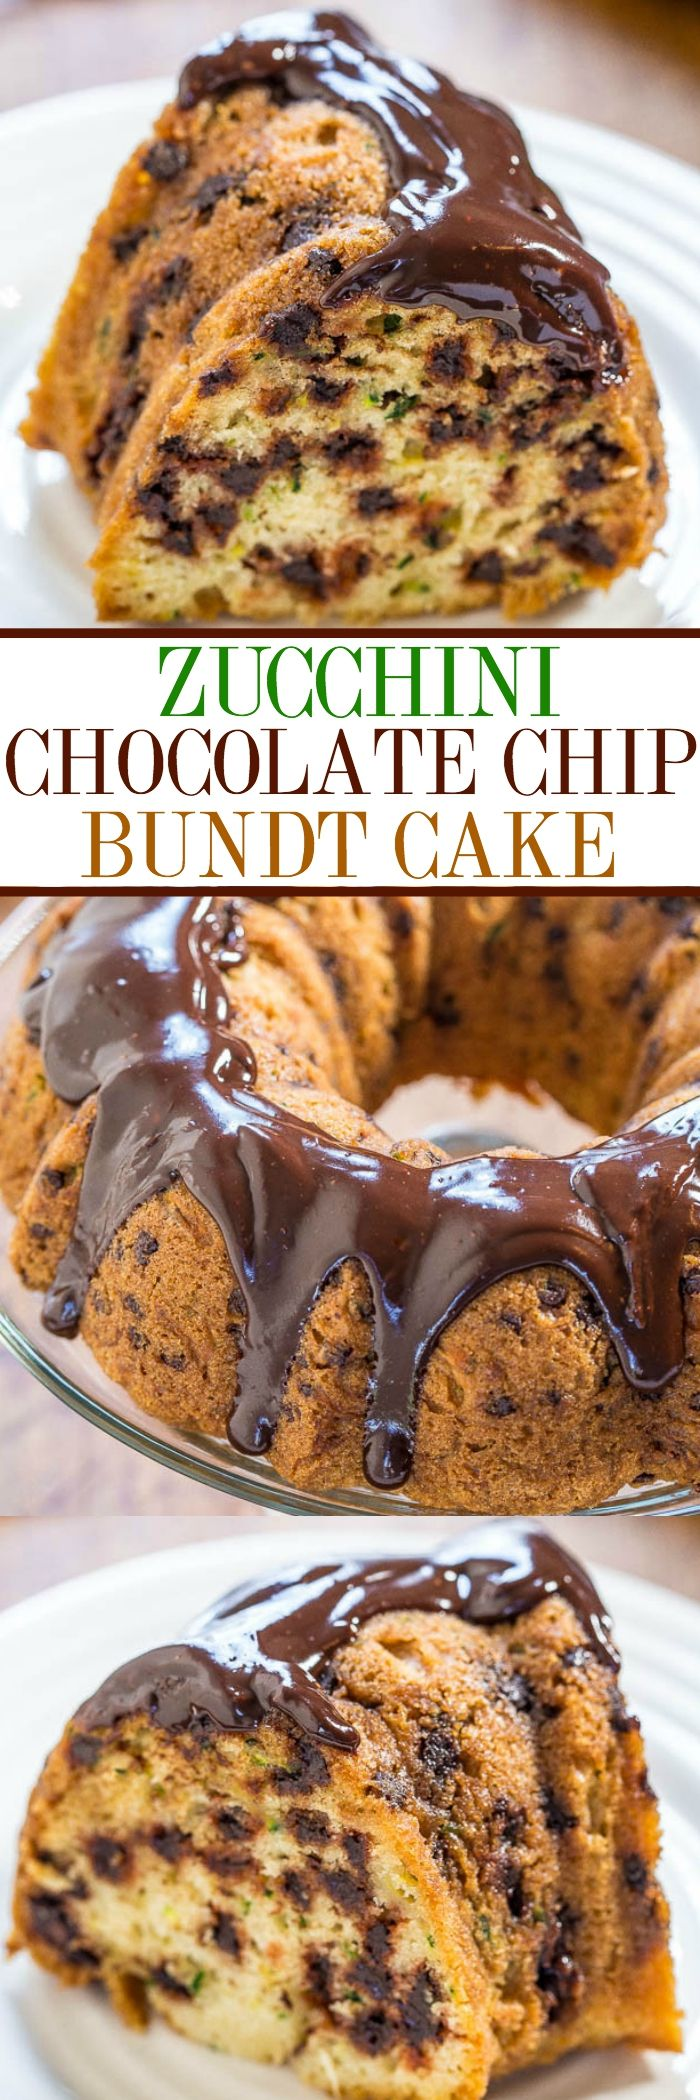 Zucchini Chocolate Chip Bundt Cake with Chocolate Ganache - The best zucchini cake ever!! Soft, moist, and you can't even taste the zucchini! Tastes like a yellow bakery cake drenched in chocolate!!